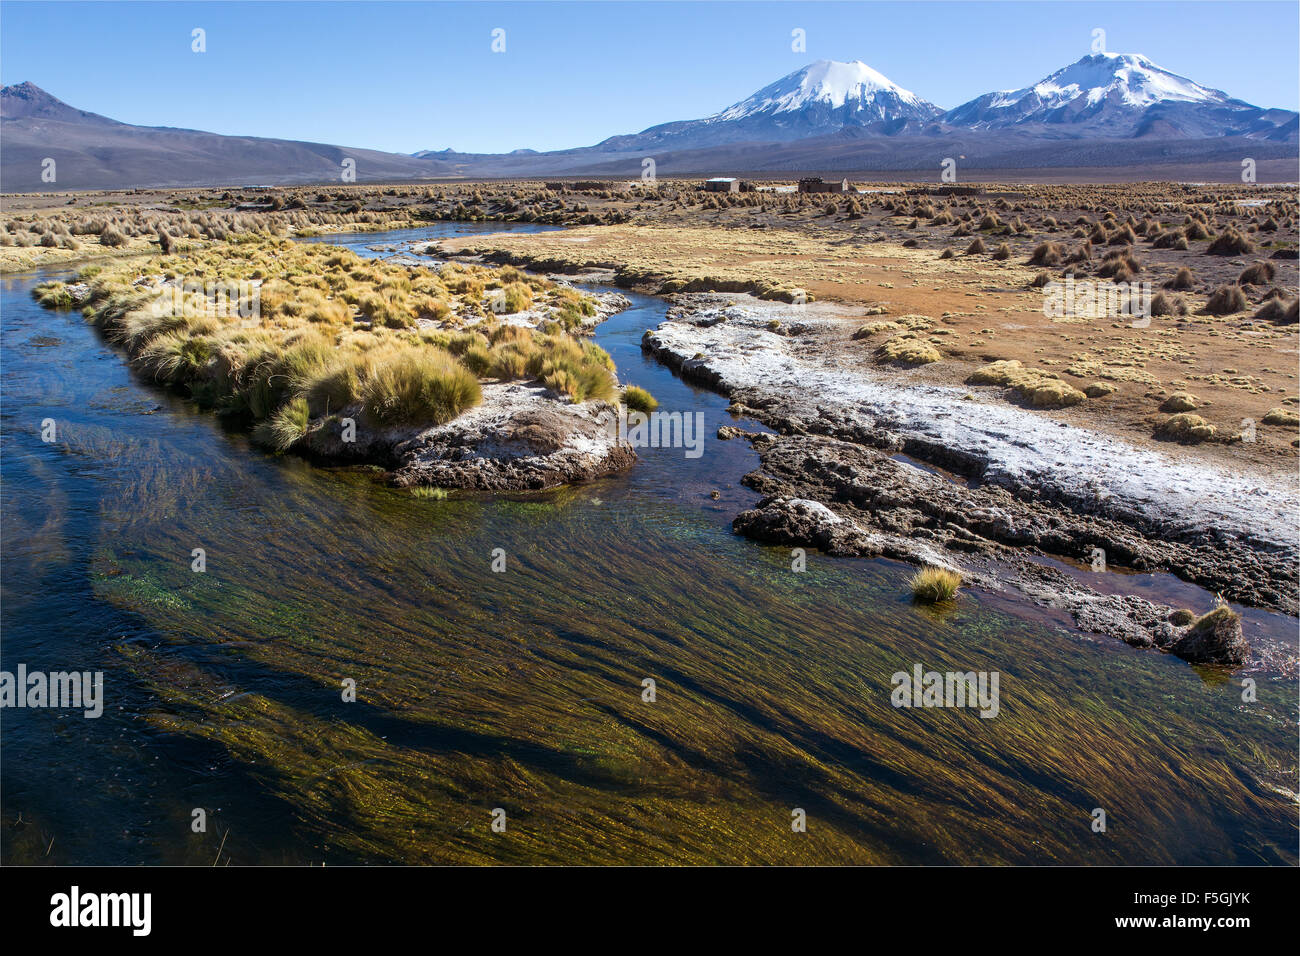 River et de plantes aquatiques en face de volcans enneigés pomerape et parinacota, sajama national park Photo Stock